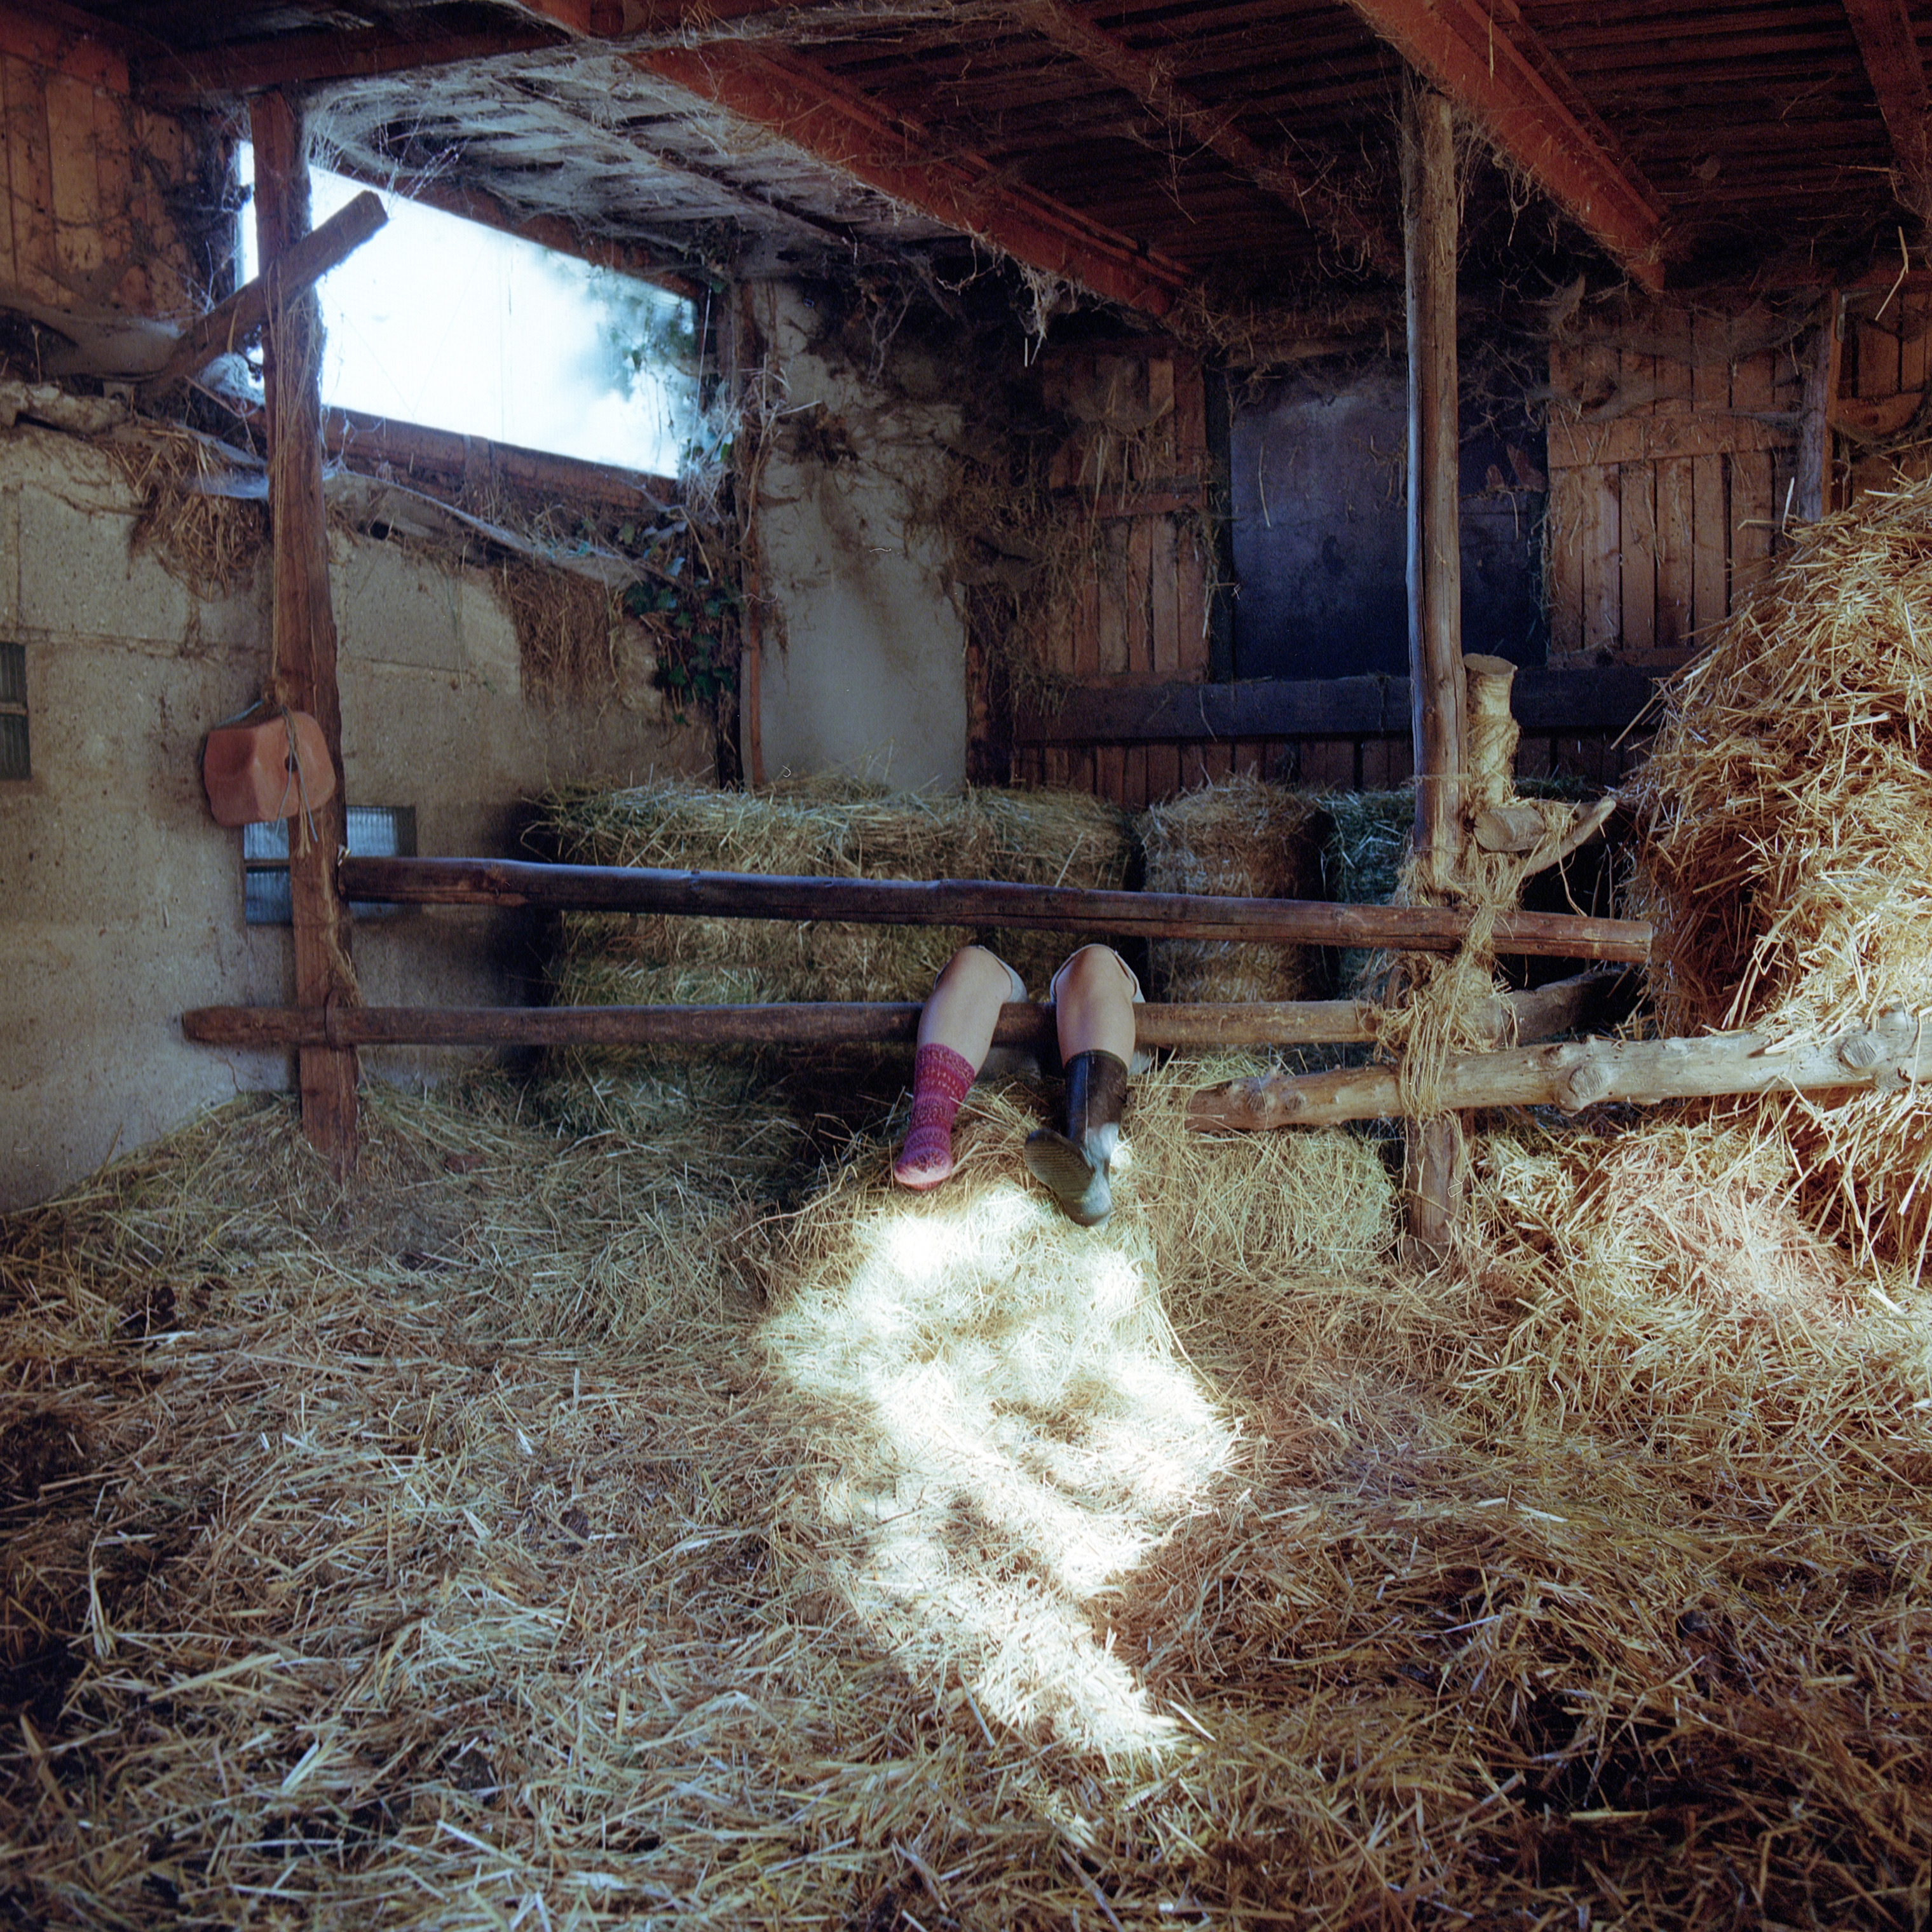 Sofie in the barn, Ellenstedt, Germany, Summer 2018